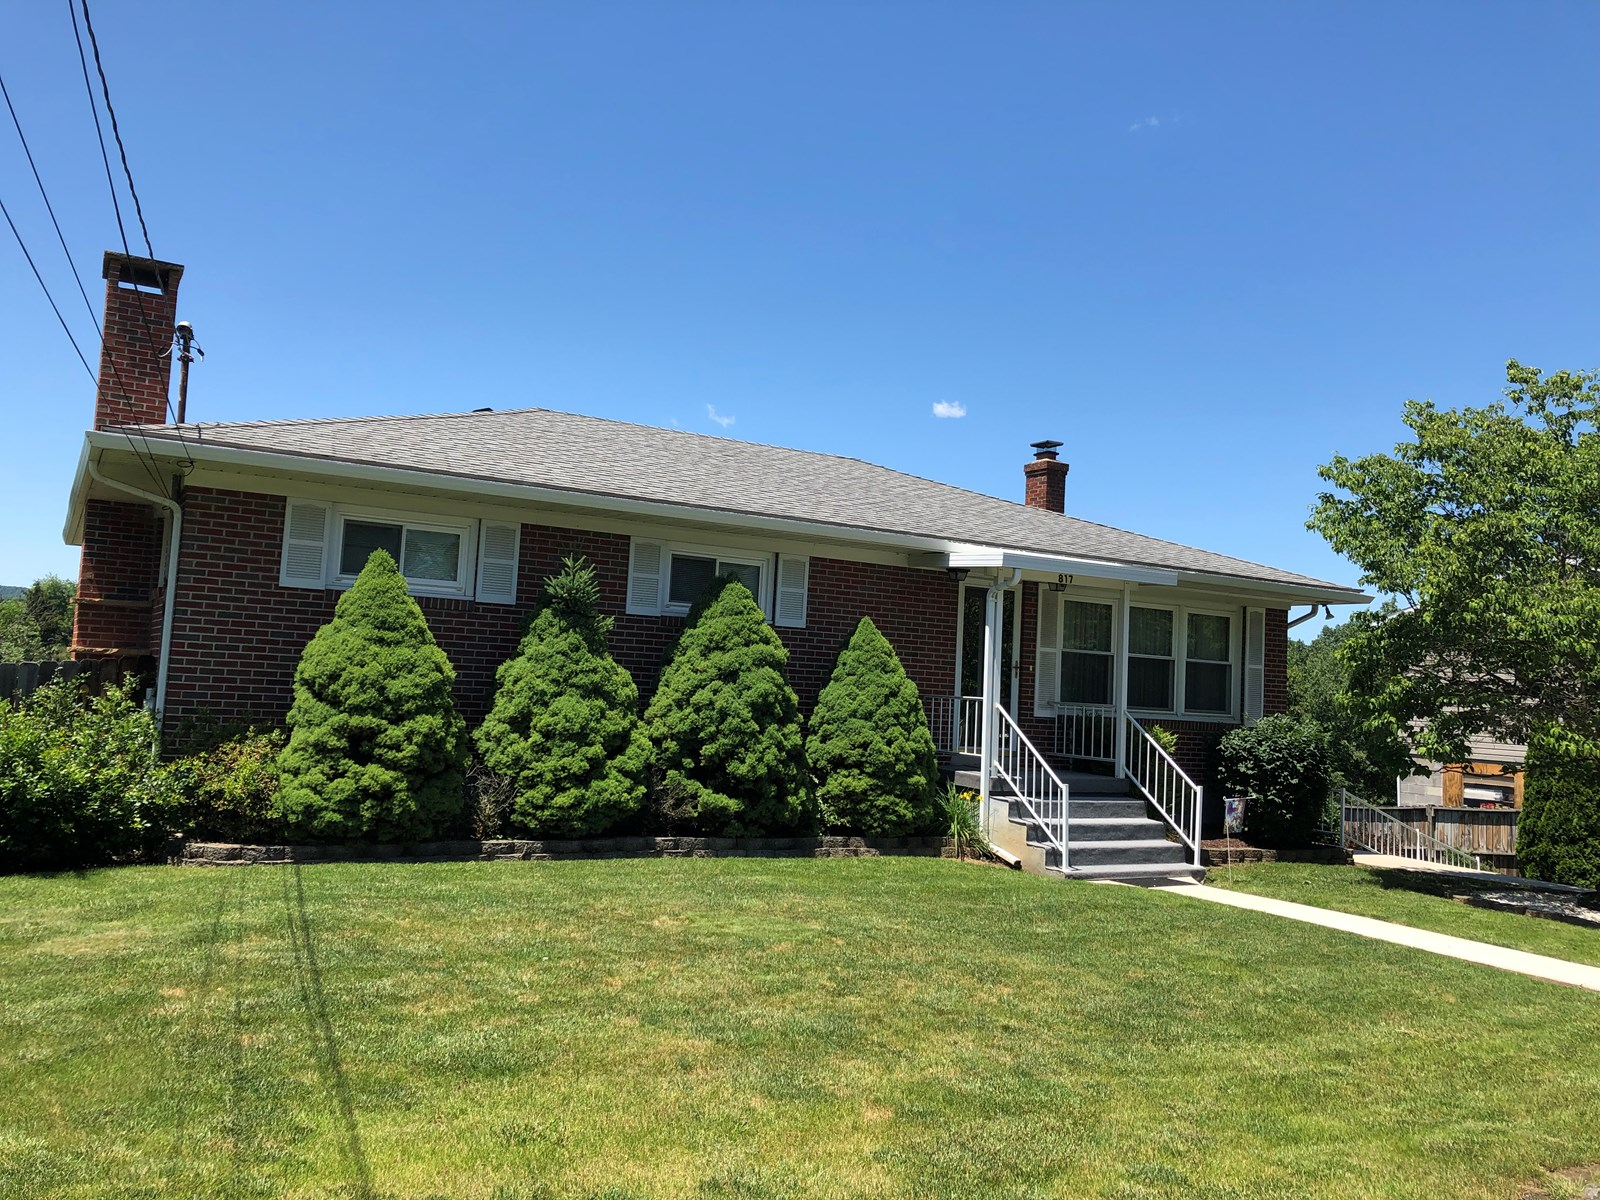 Brick Home for sale in Cumberland MD